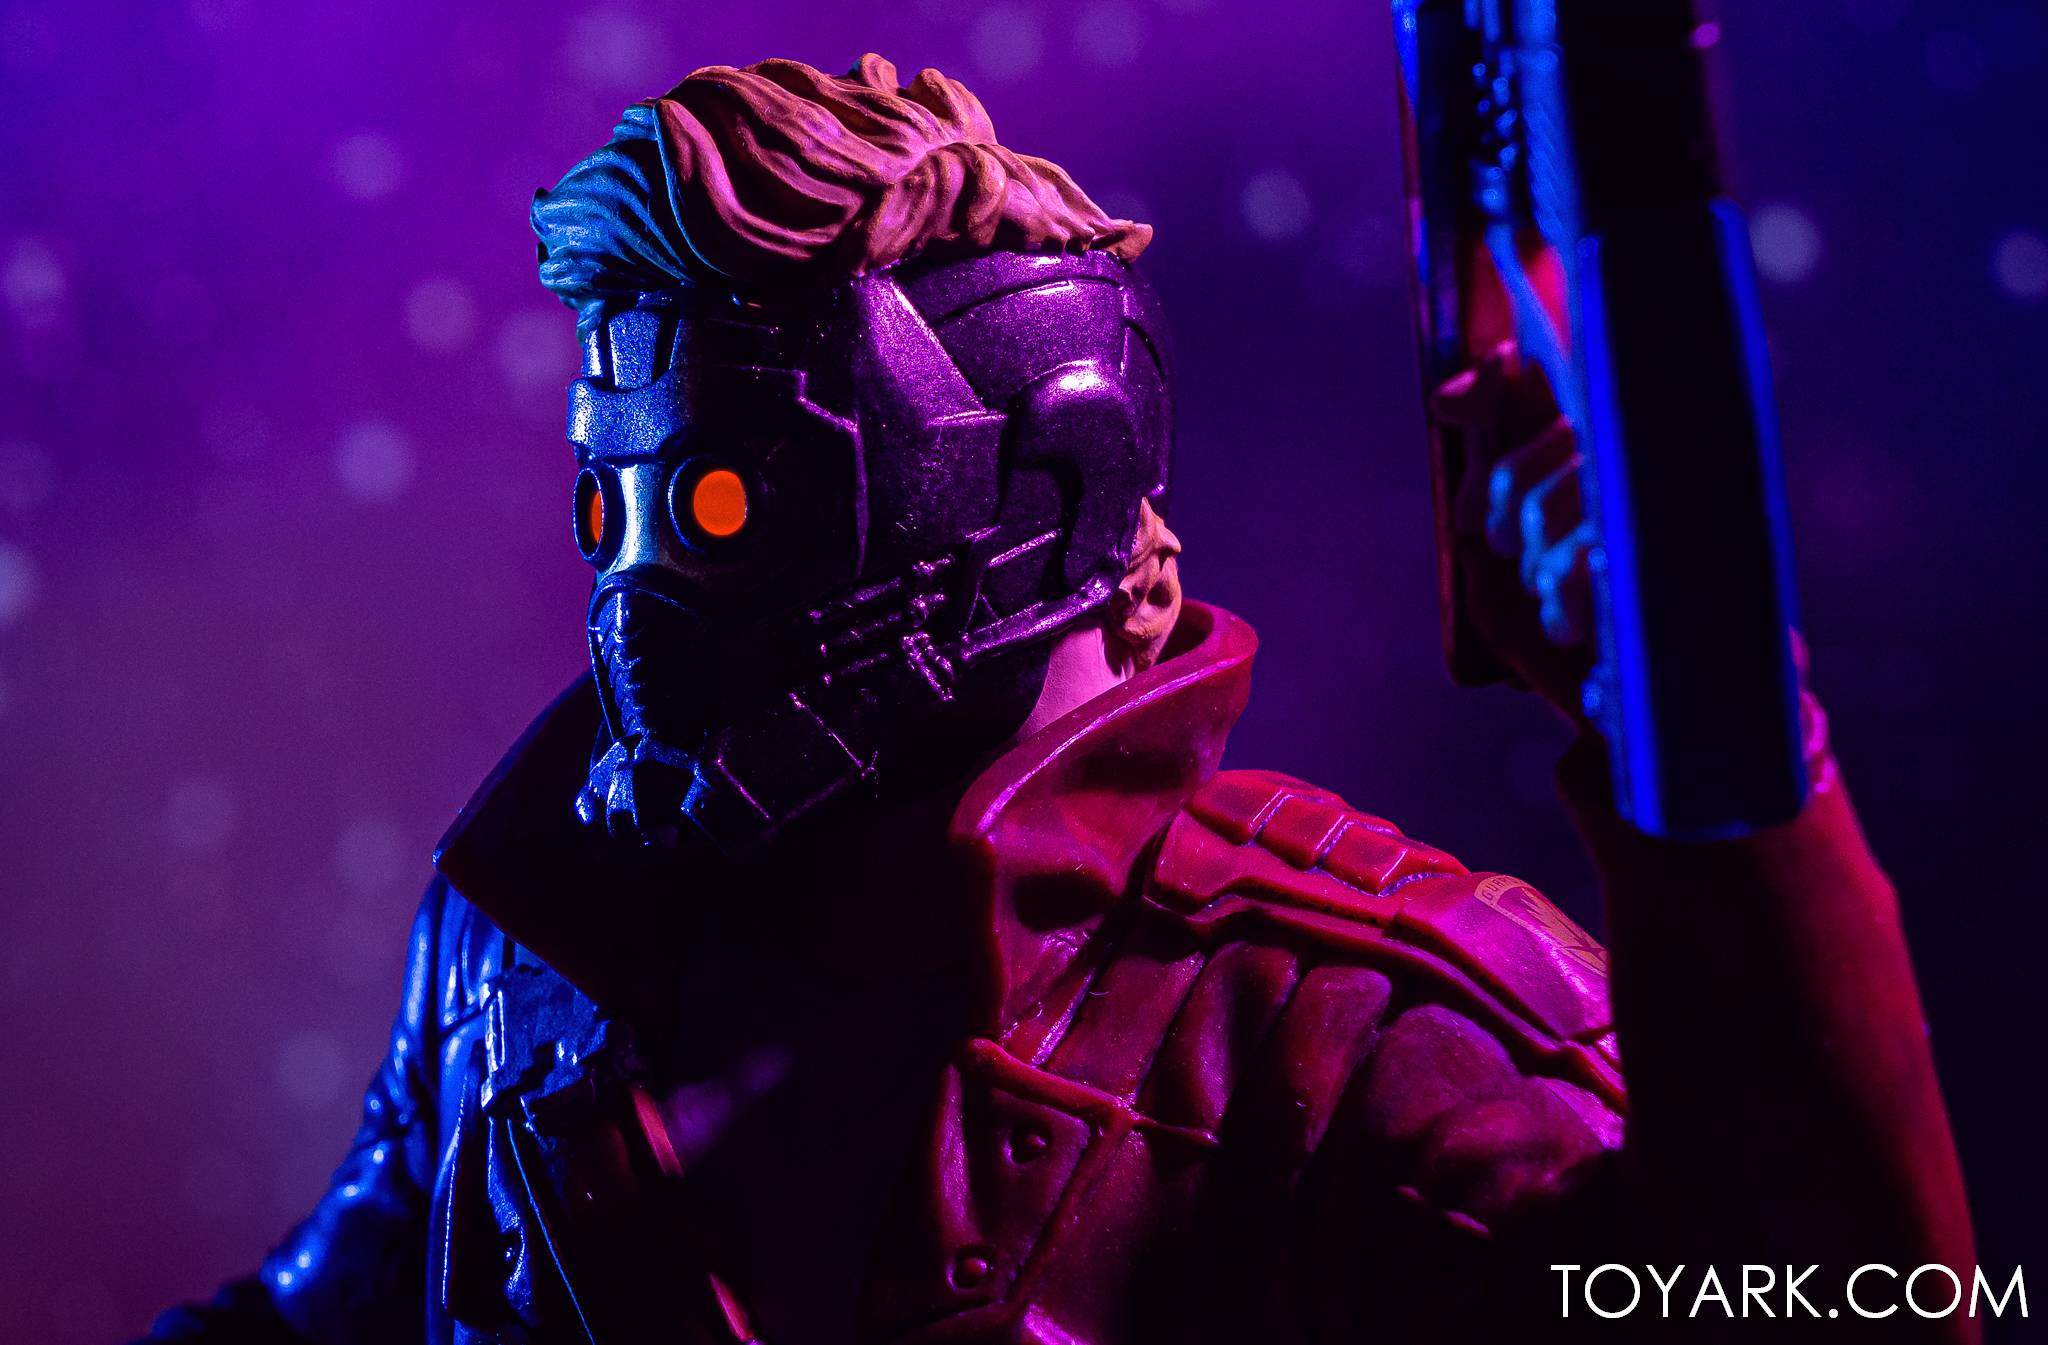 https://news.toyark.com/wp-content/uploads/sites/4/2021/04/Loot-Crate-GotG-Star-Lord-Bust-015.jpg